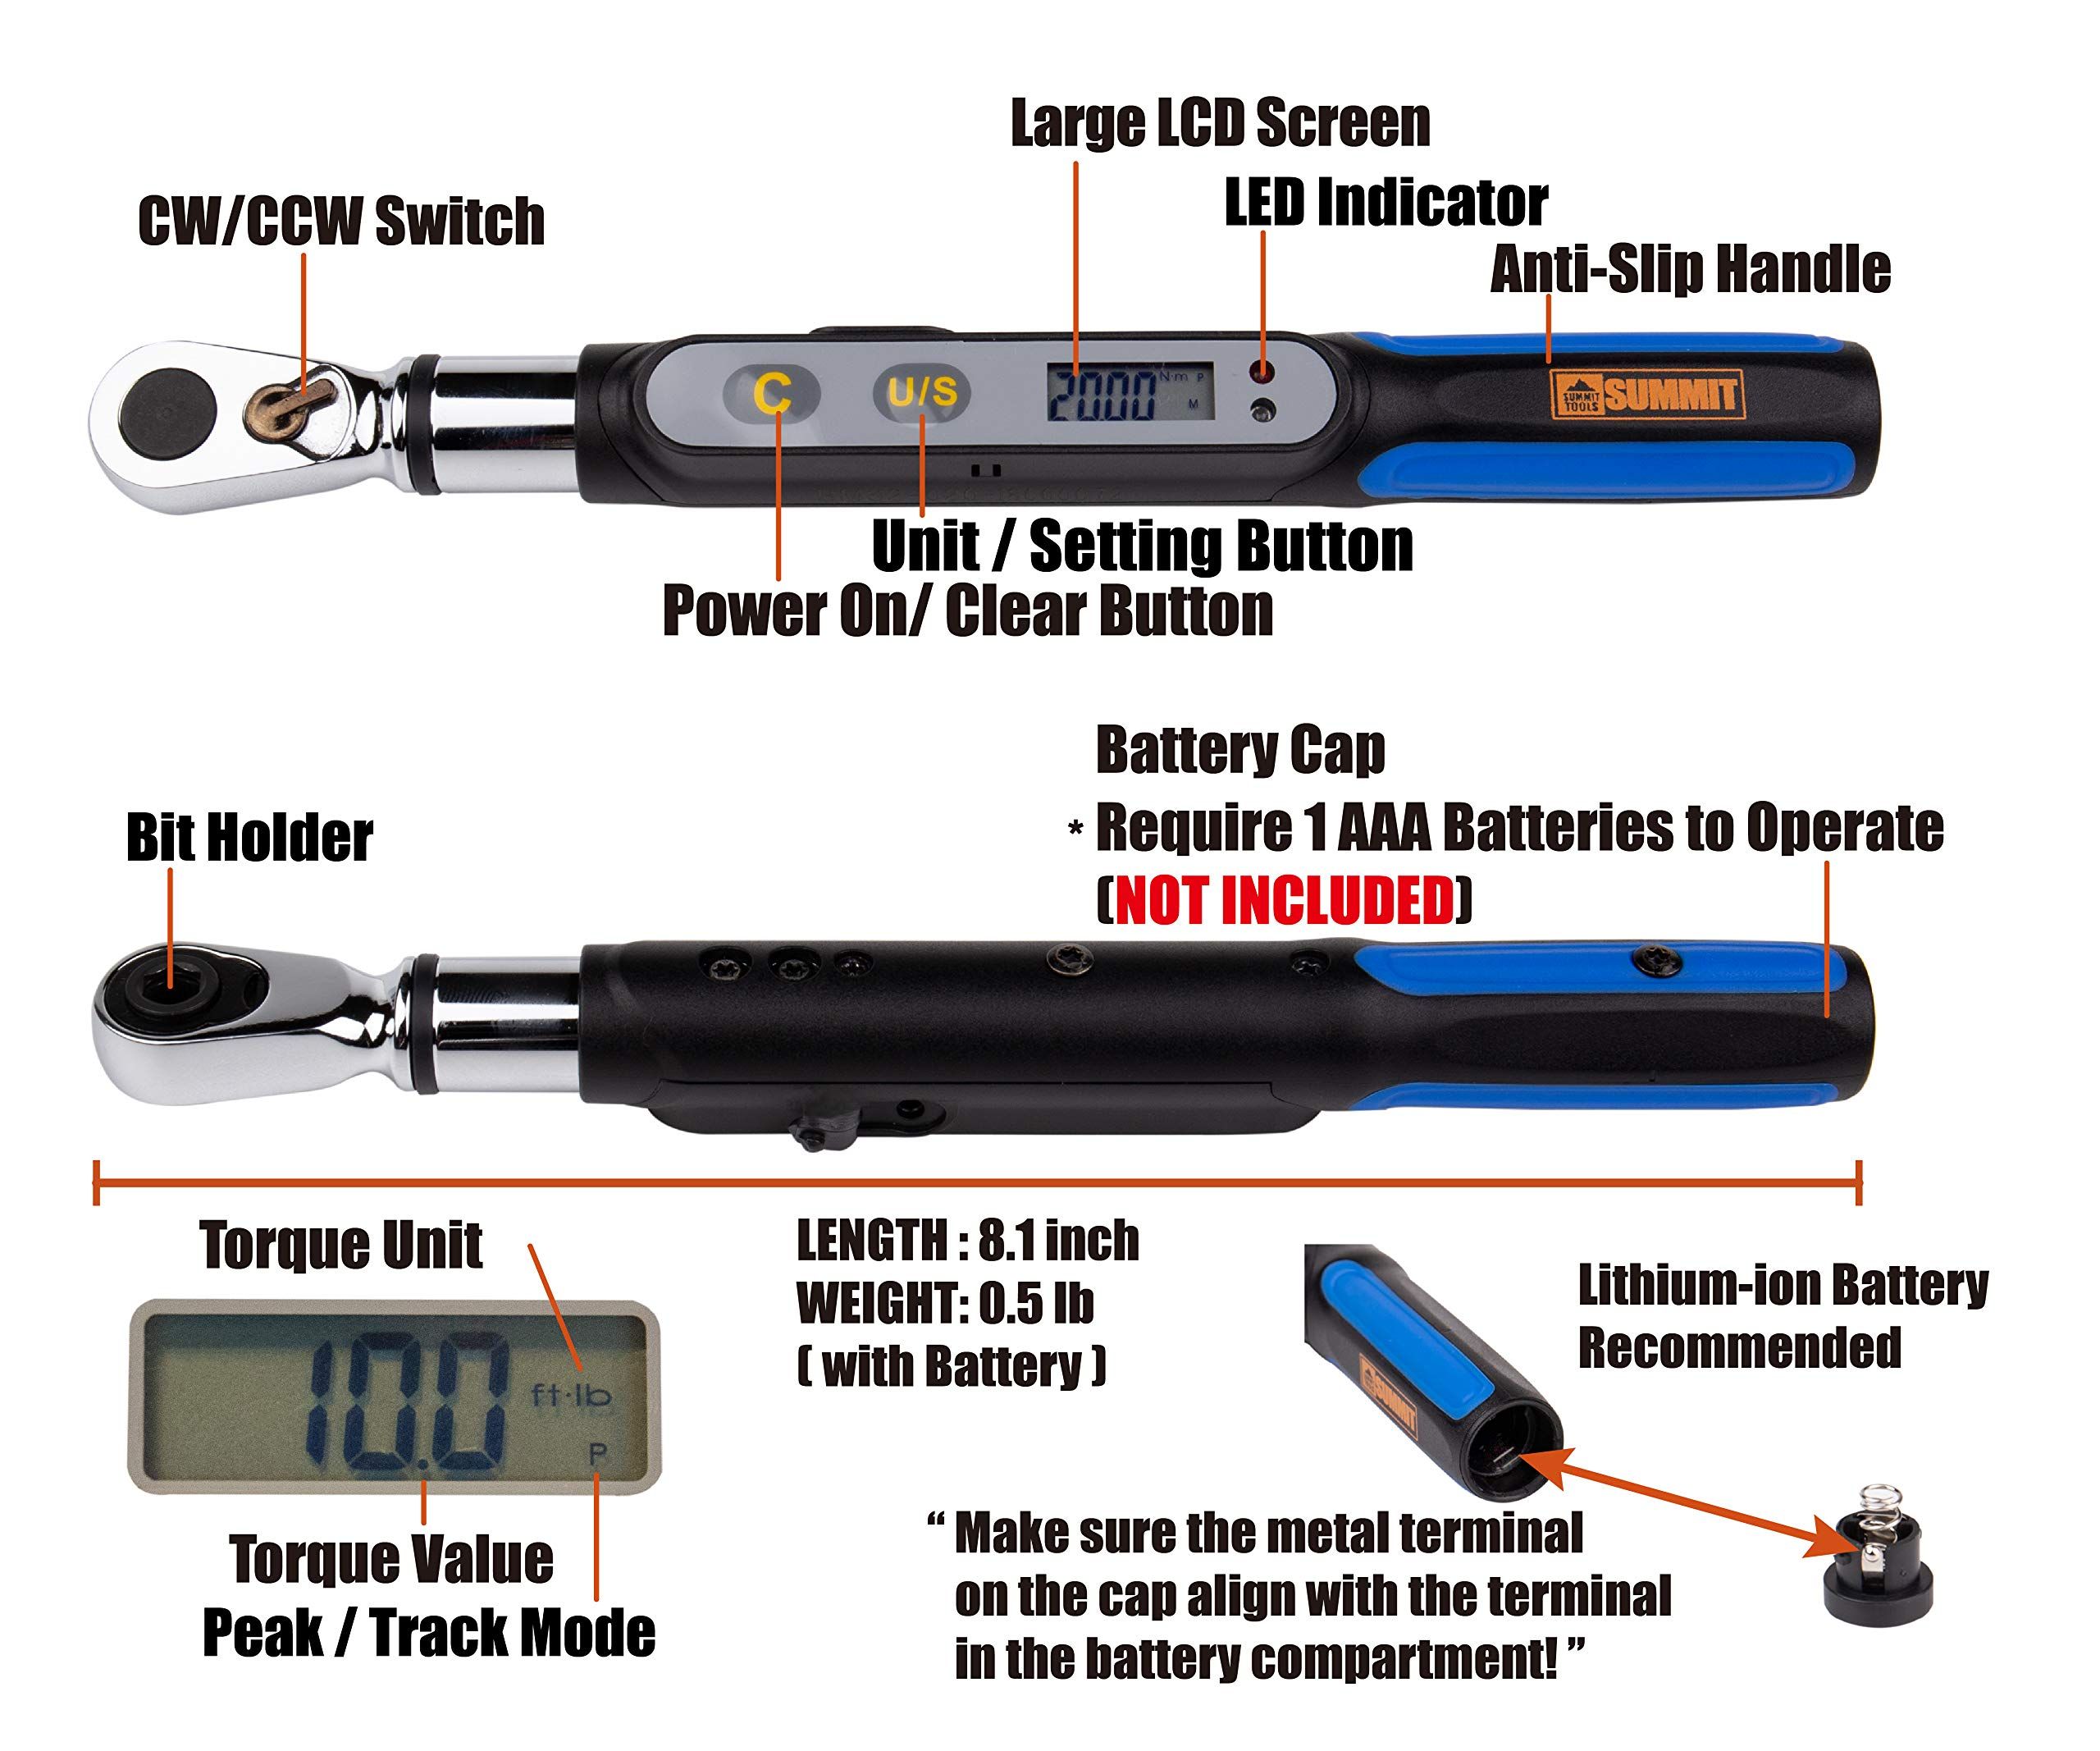 Summit Tools Mini Digital Torque Wrench (BMS2-020CN-S) with Bit Set, Peak Hold, LCD Display, Non Slip Grip, 1/4 in. Drive Adopter. 0.74-14.75 ft-lbs Torque Range, Bike Tool Set with Storage Case by Summit Tools (Image #3)